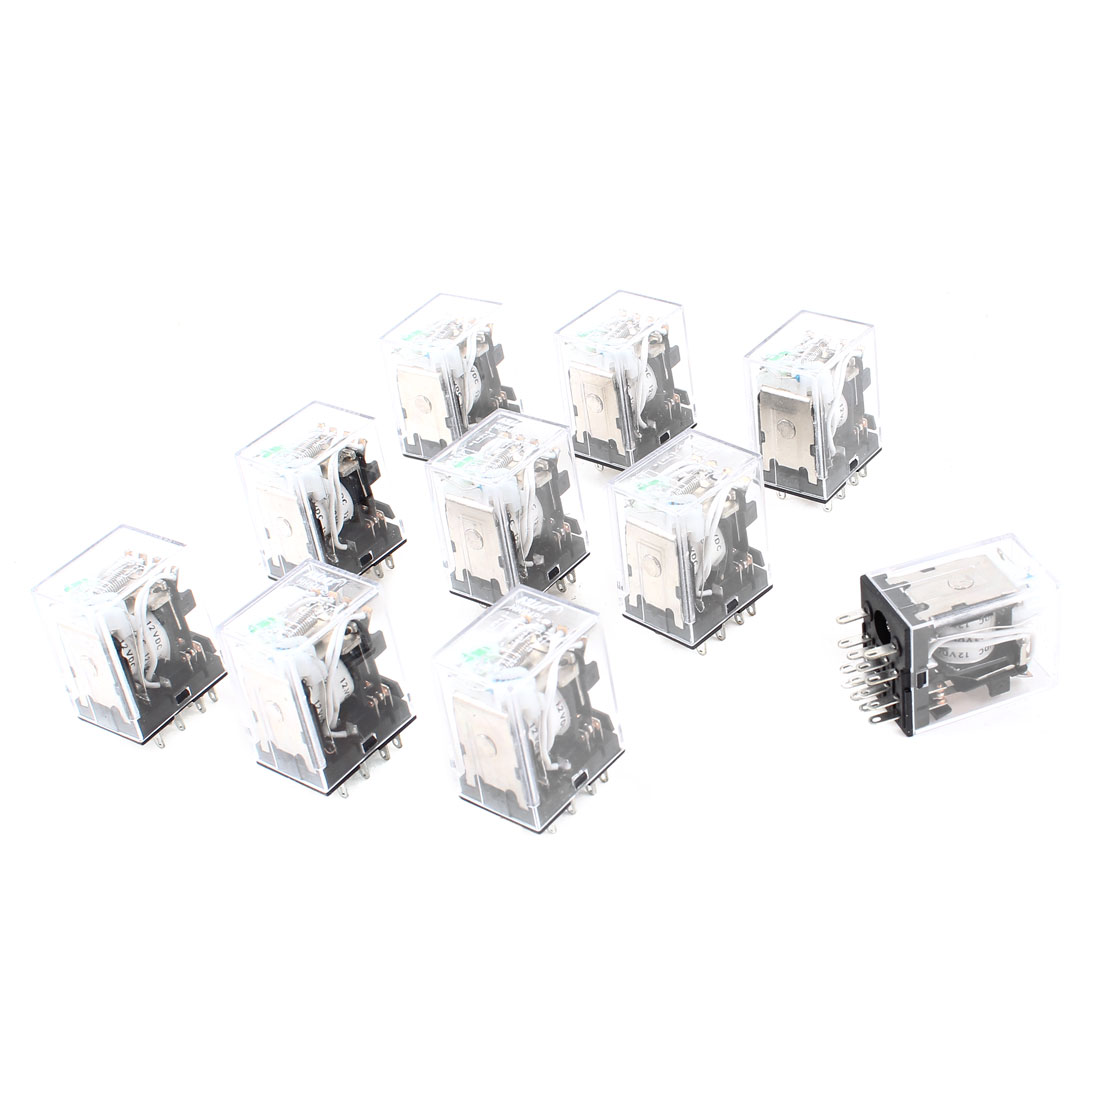 10 Pcs HH54PL DC 12V Coil 4PDT Green LED Light General Purpose Power Relay